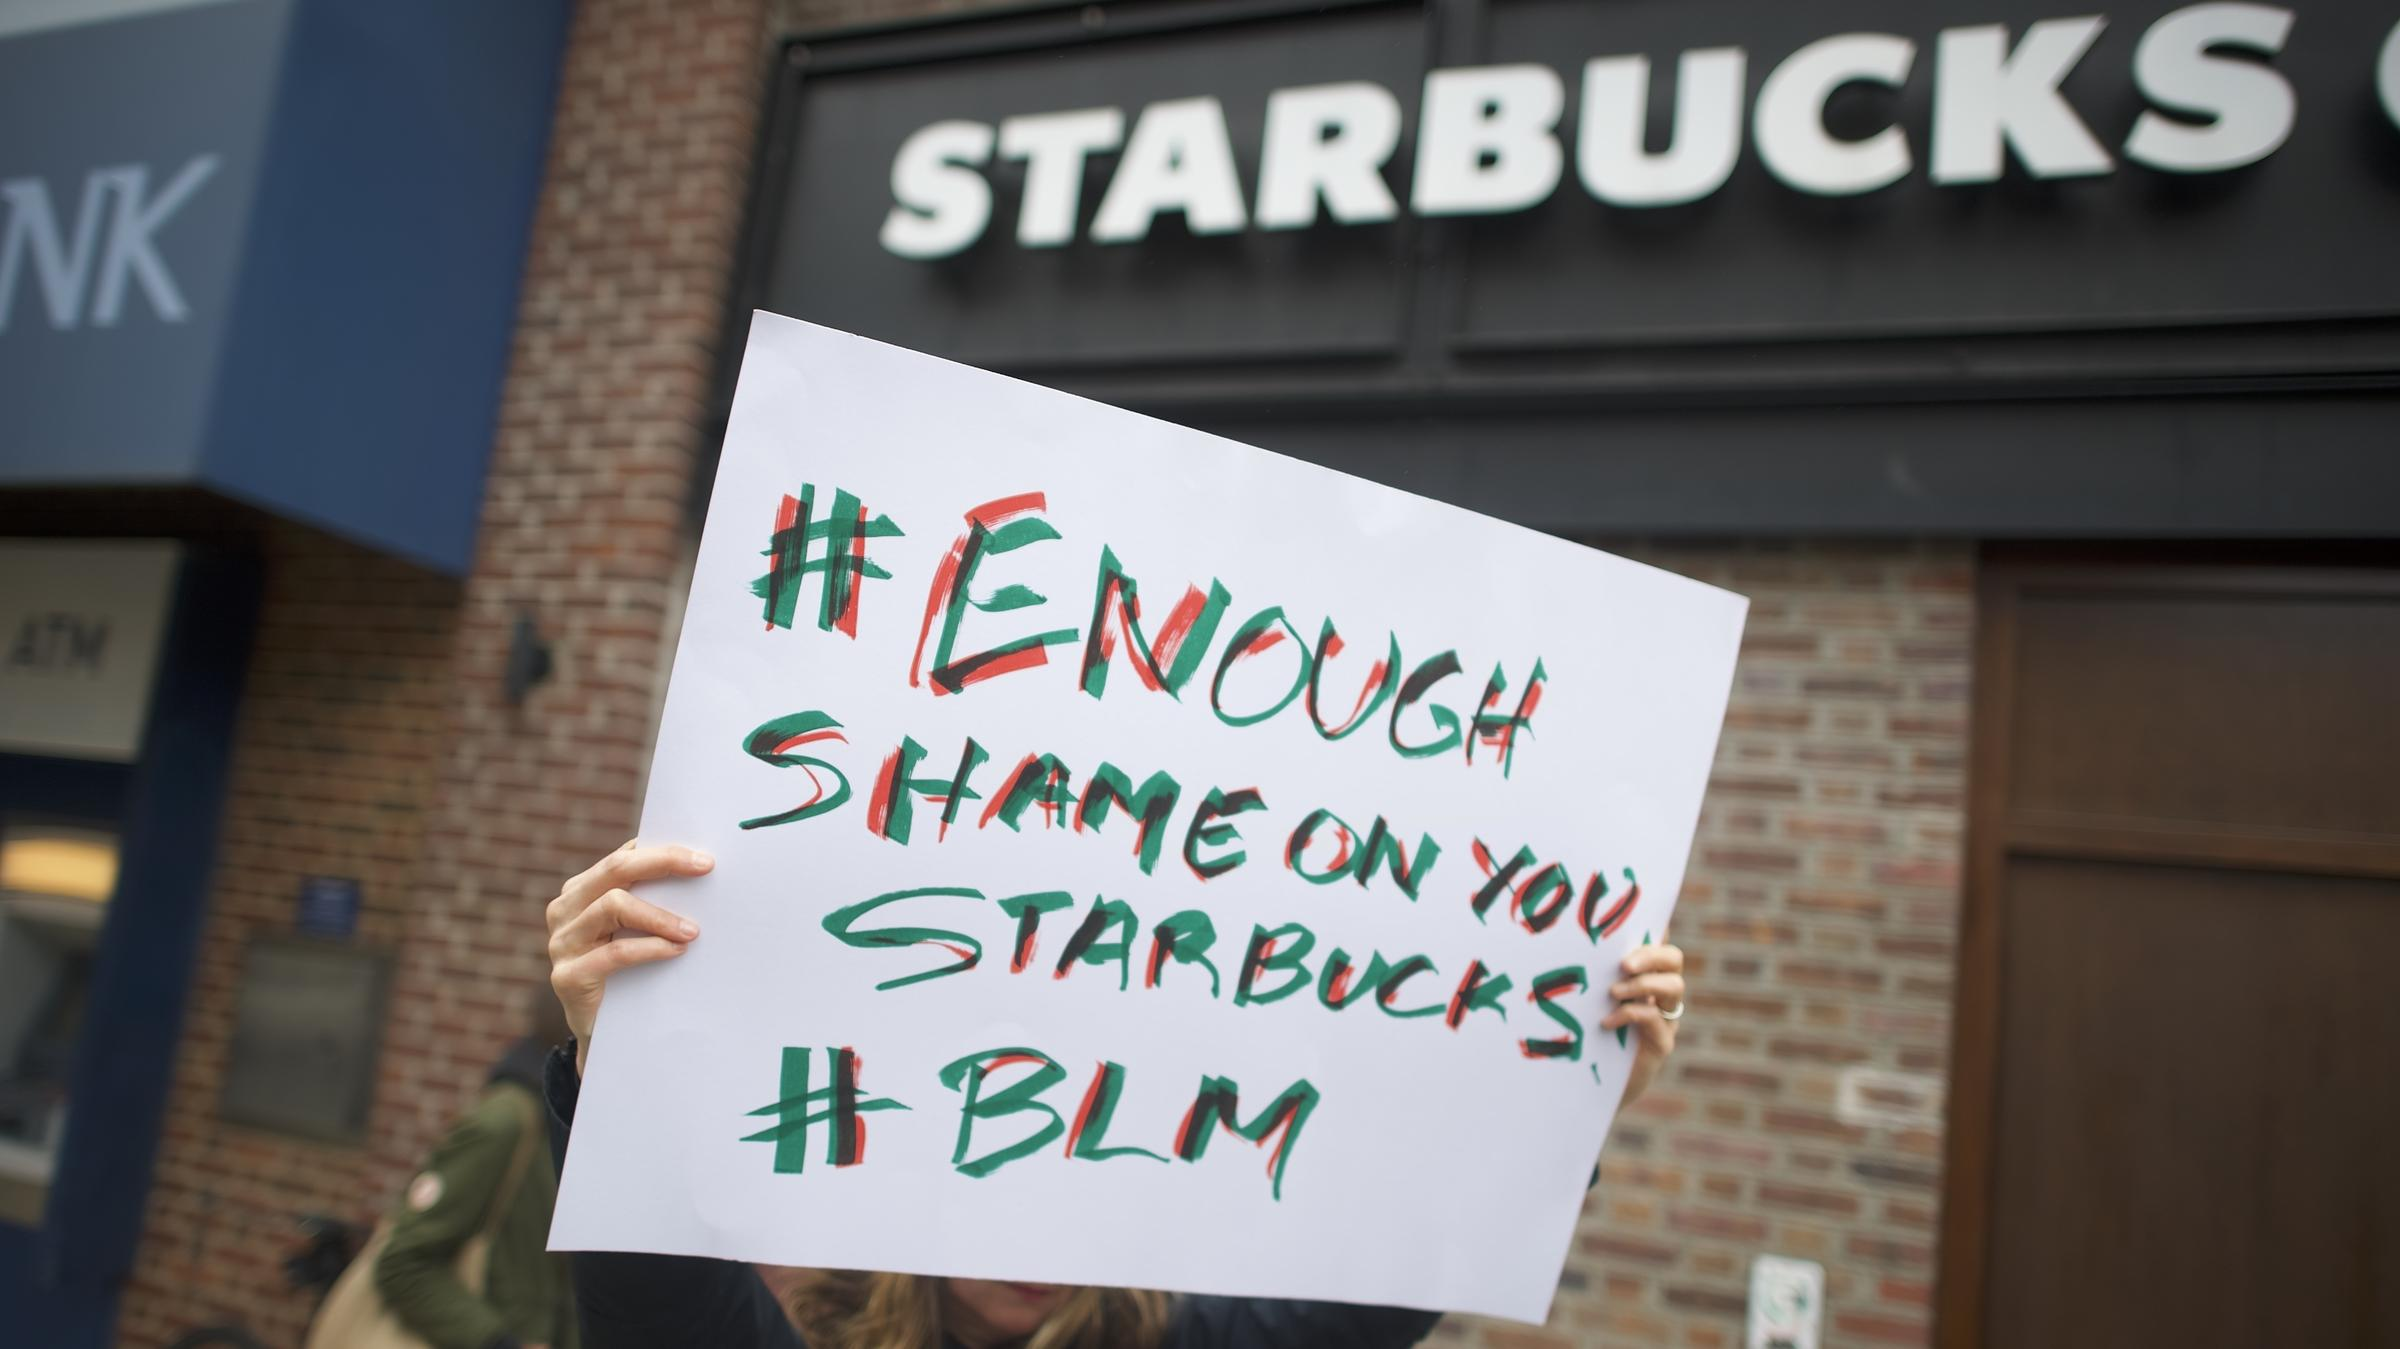 Starbucks to close stores for bias training